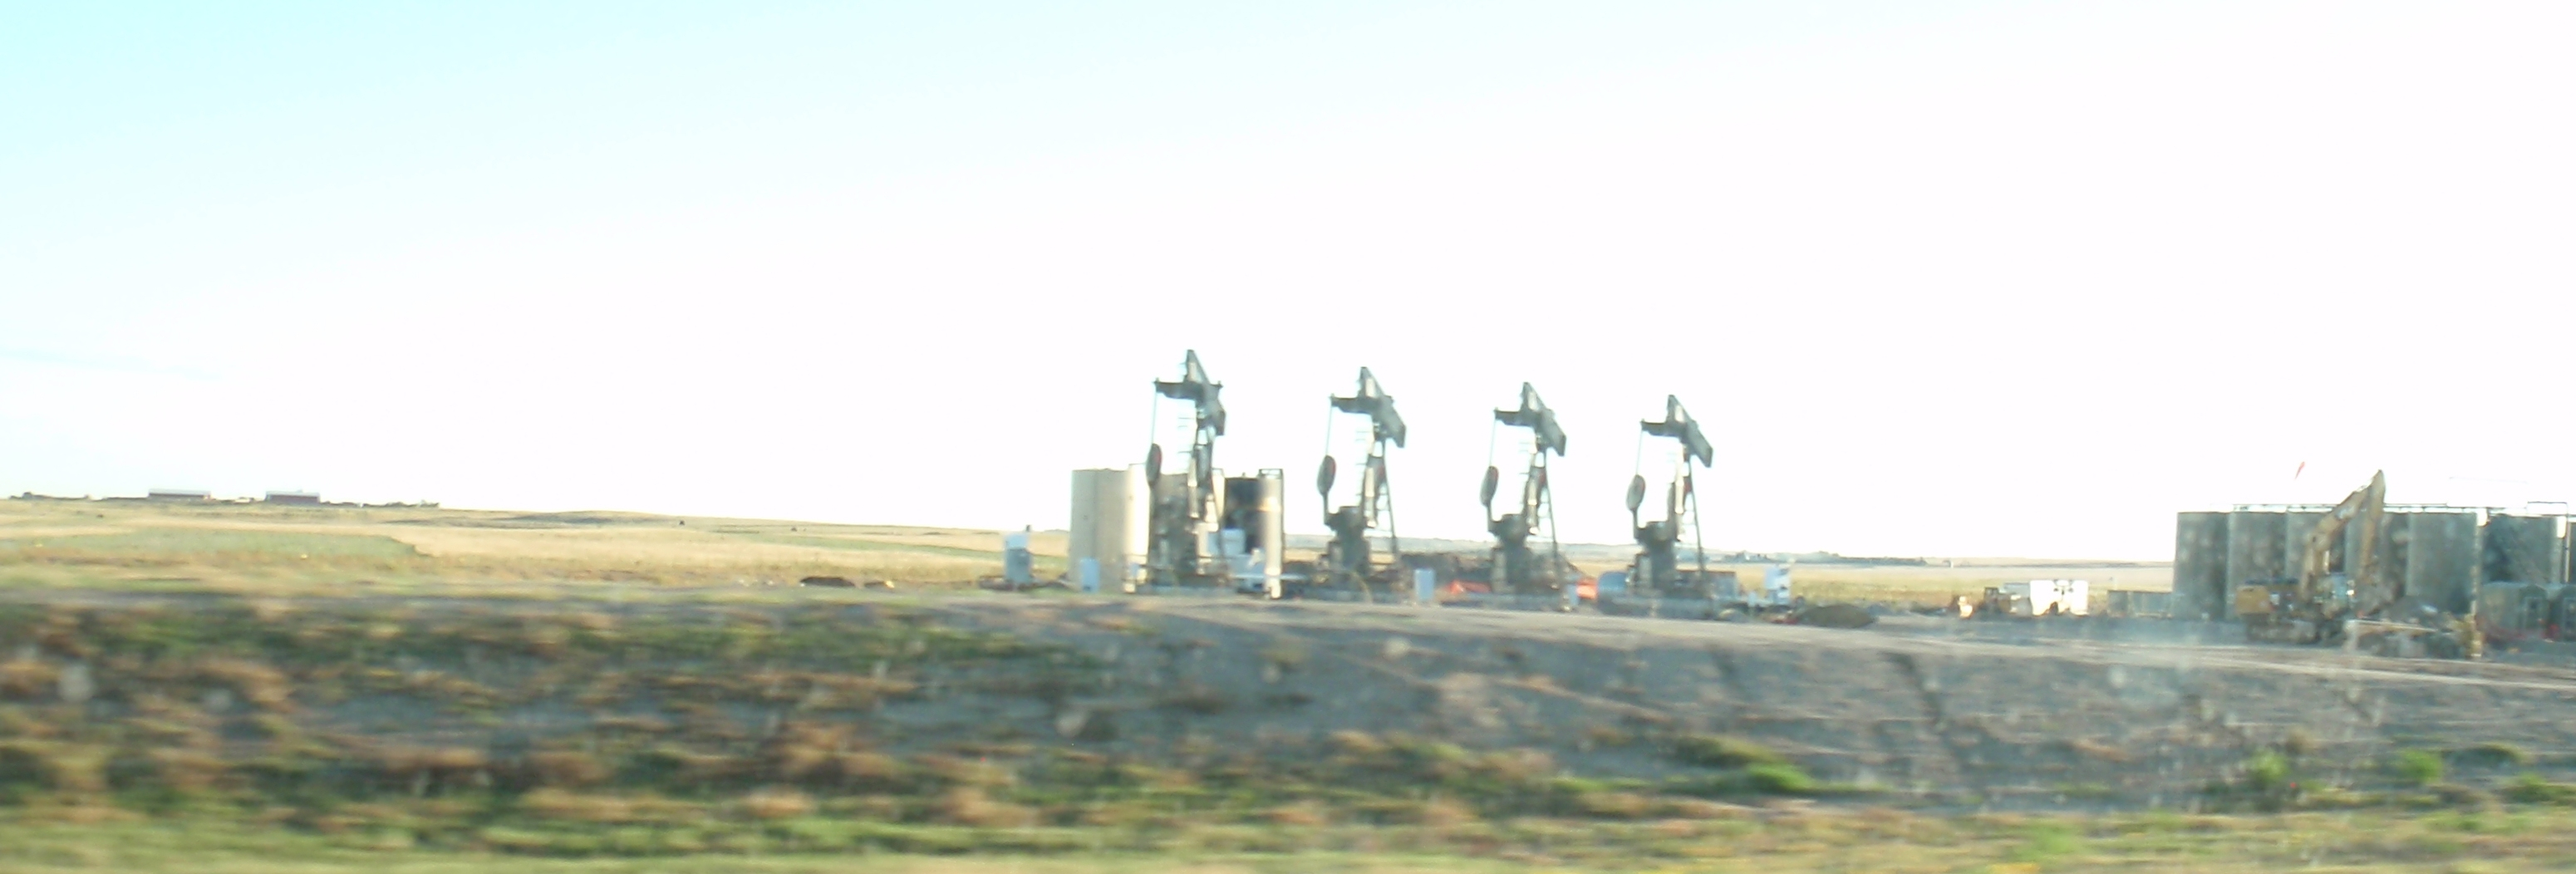 Pumpjacks about ready to come online in North Dakota. Photo in October 2015 by James Ulvog. Not what OPEC planned.